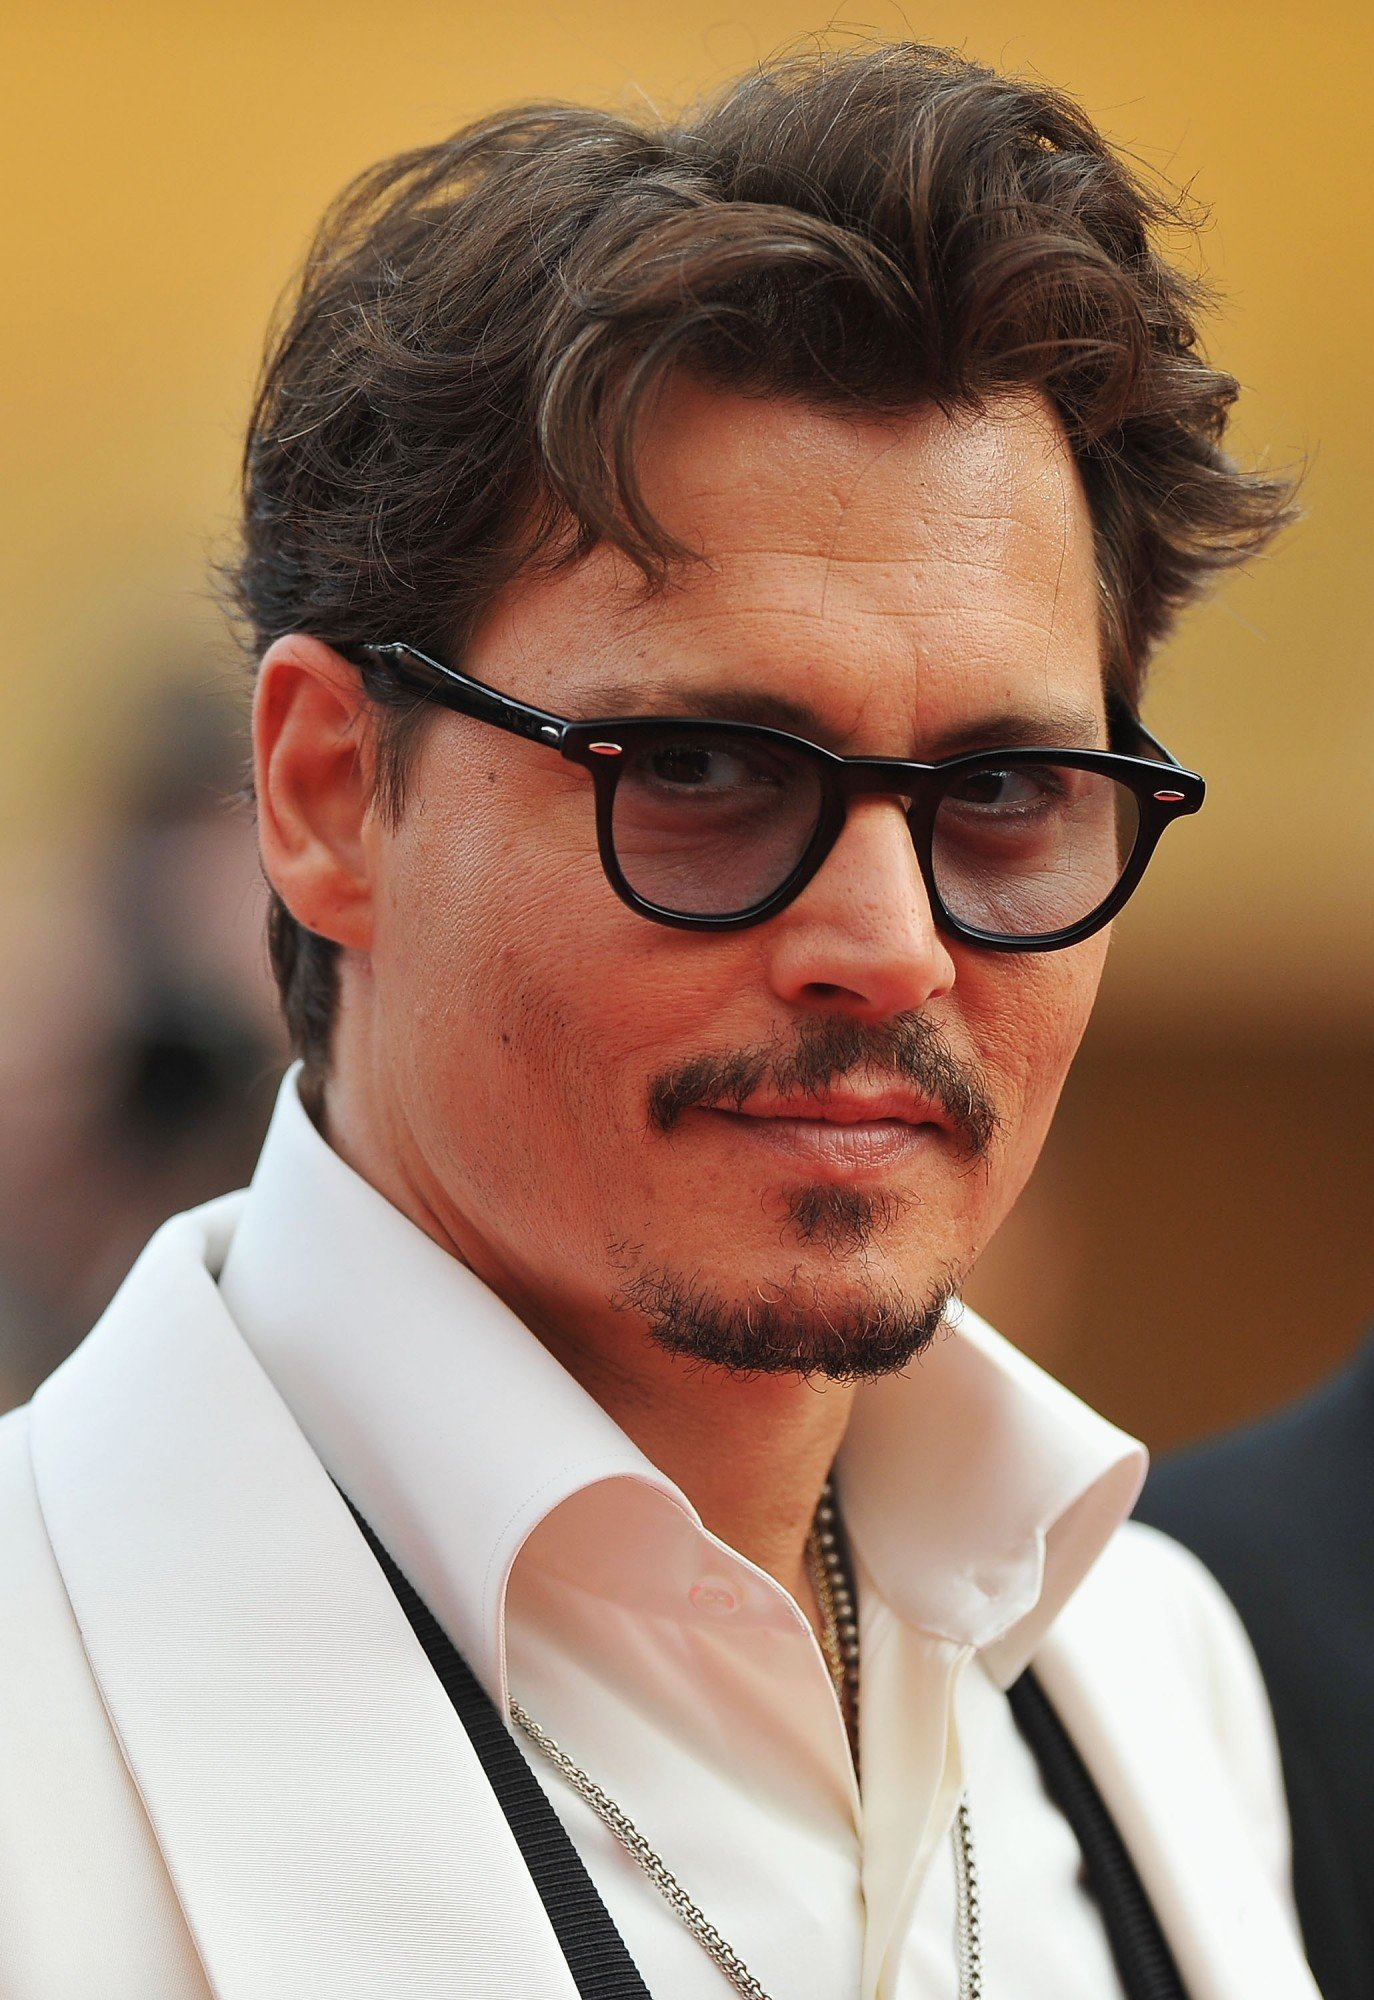 """CANNES, FRANCE - MAY 14: Actor Johnny Depp attends the """"Pirates of the Caribbean: On Stranger Tides"""" premiere at the Palais des Festivals during the 64th Cannes Film Festival on May 14, 2011 in Cannes, France. (Photo by Pascal Le Segretain/Getty Images)"""